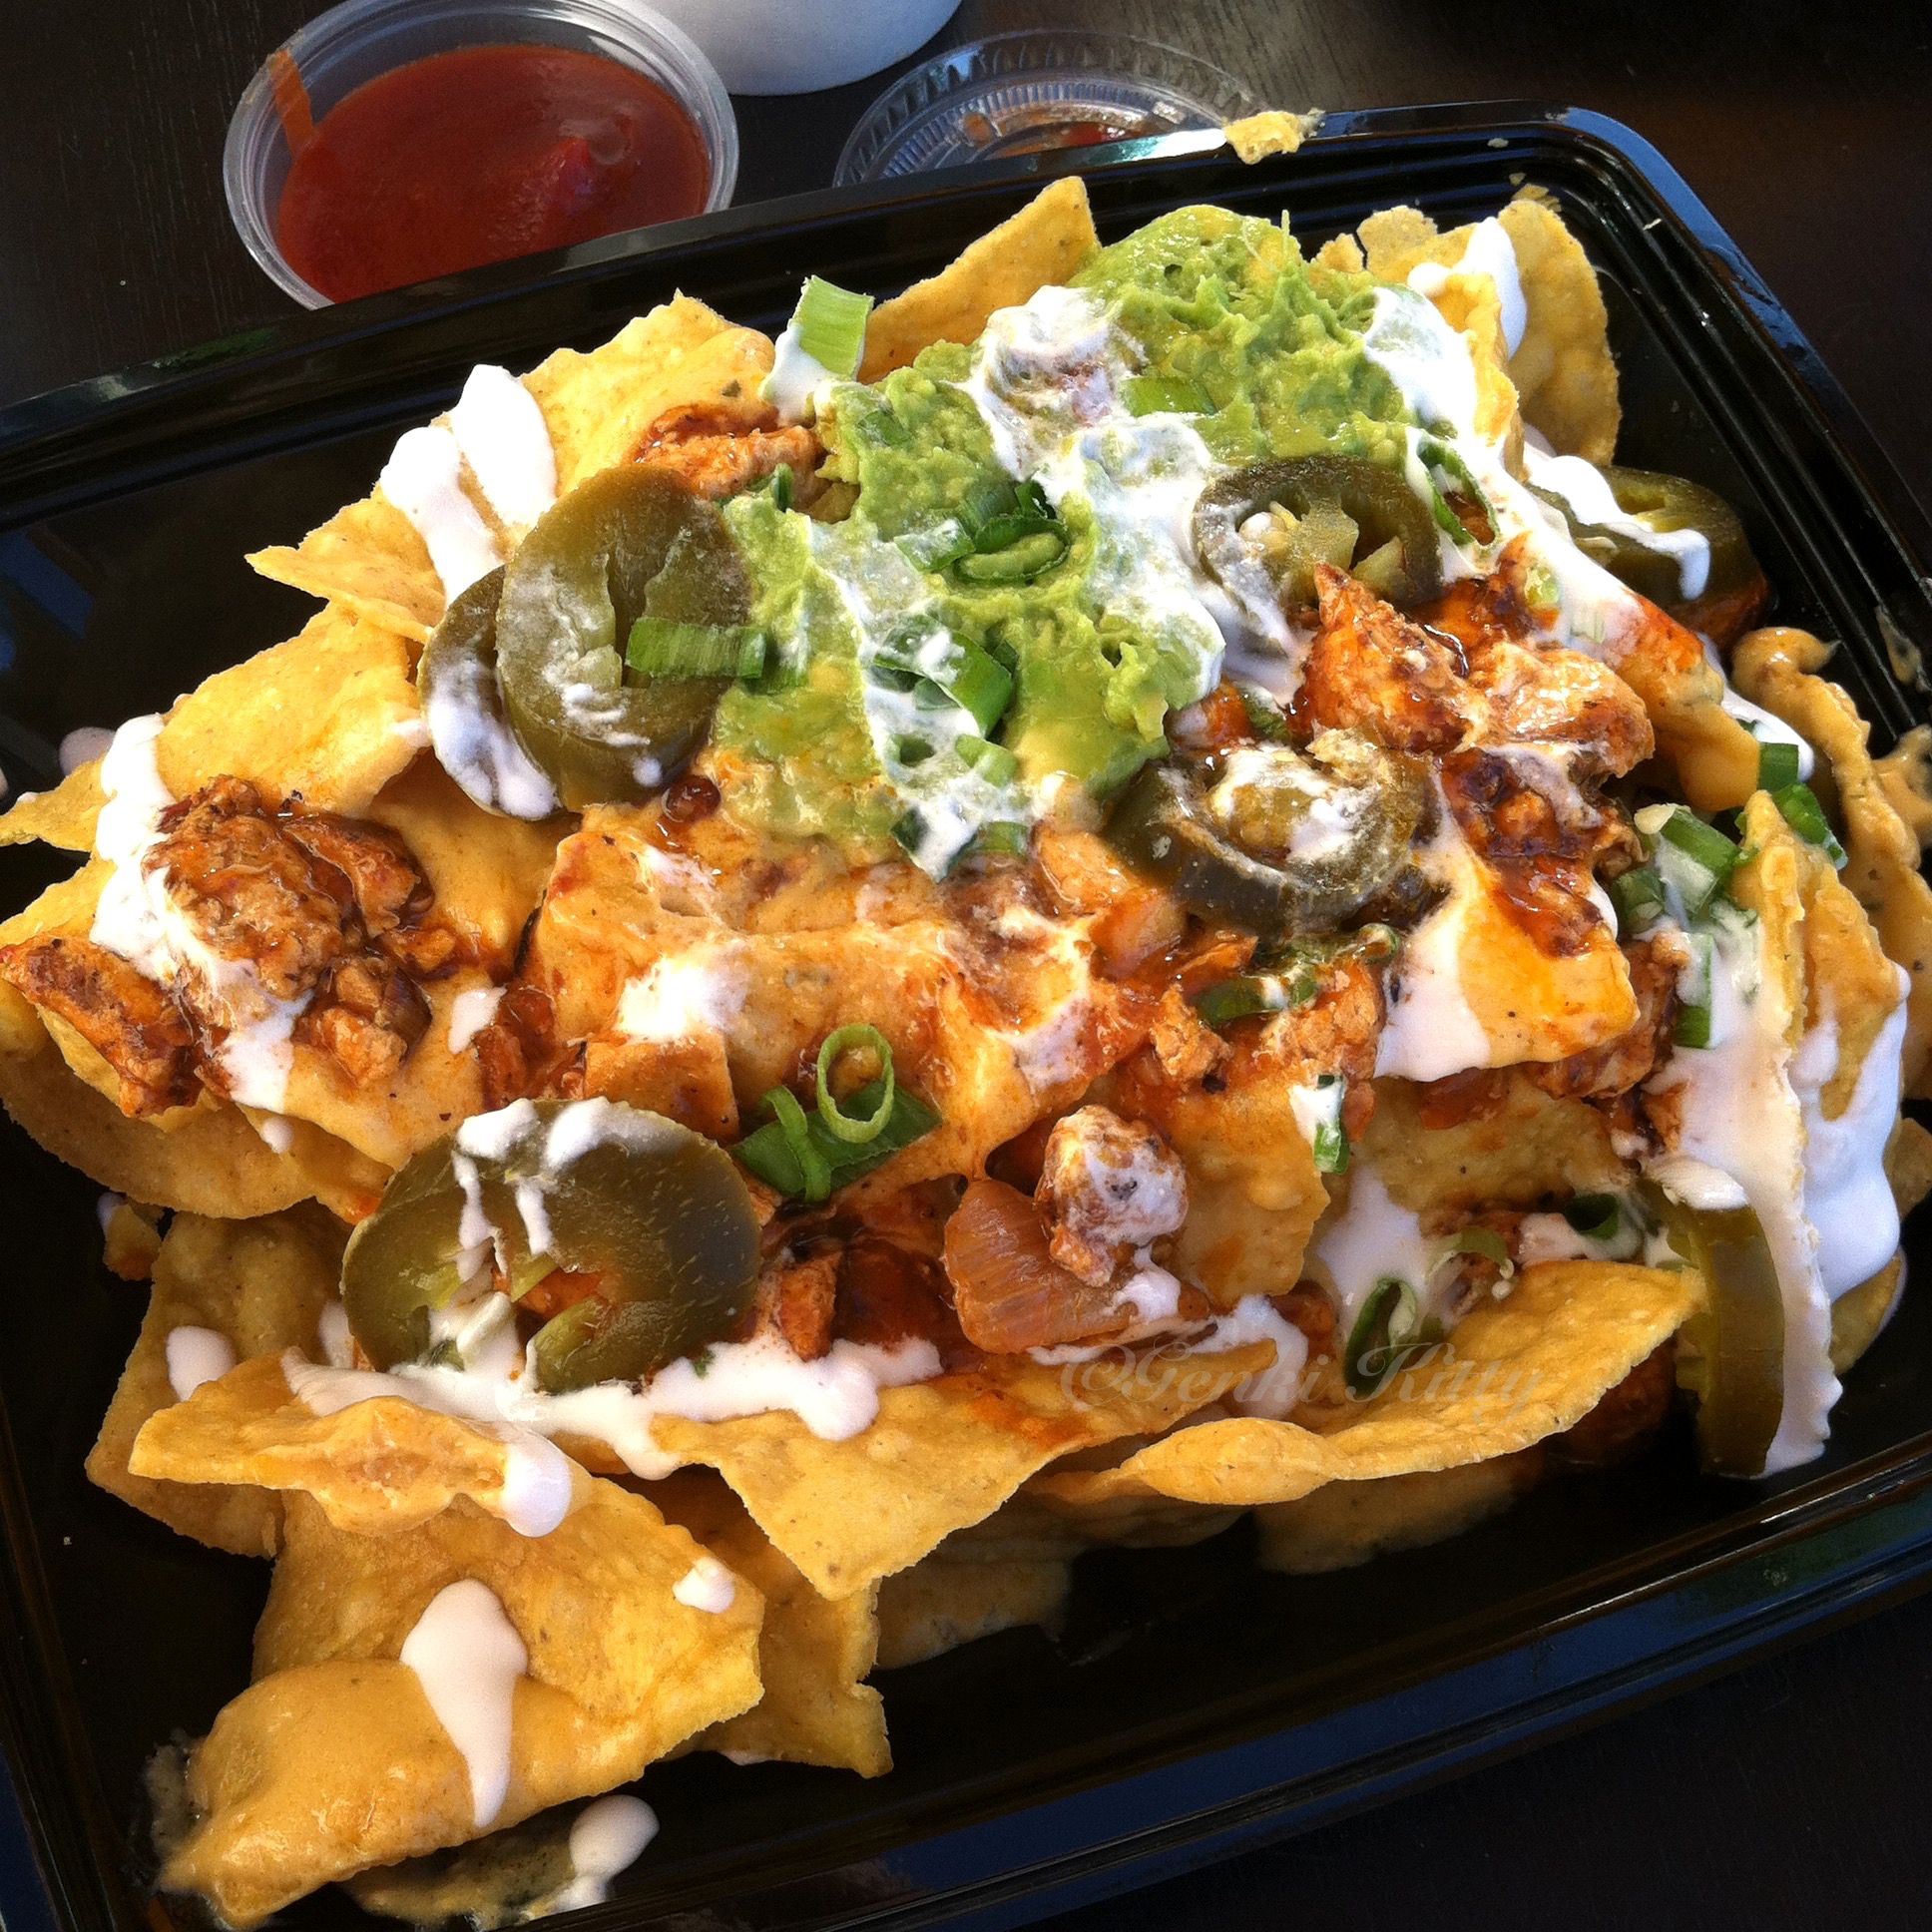 Veggie Grill's Mondo Nachos - my favorite dish from this vegan restaurant in California. I eat this every time I visit.